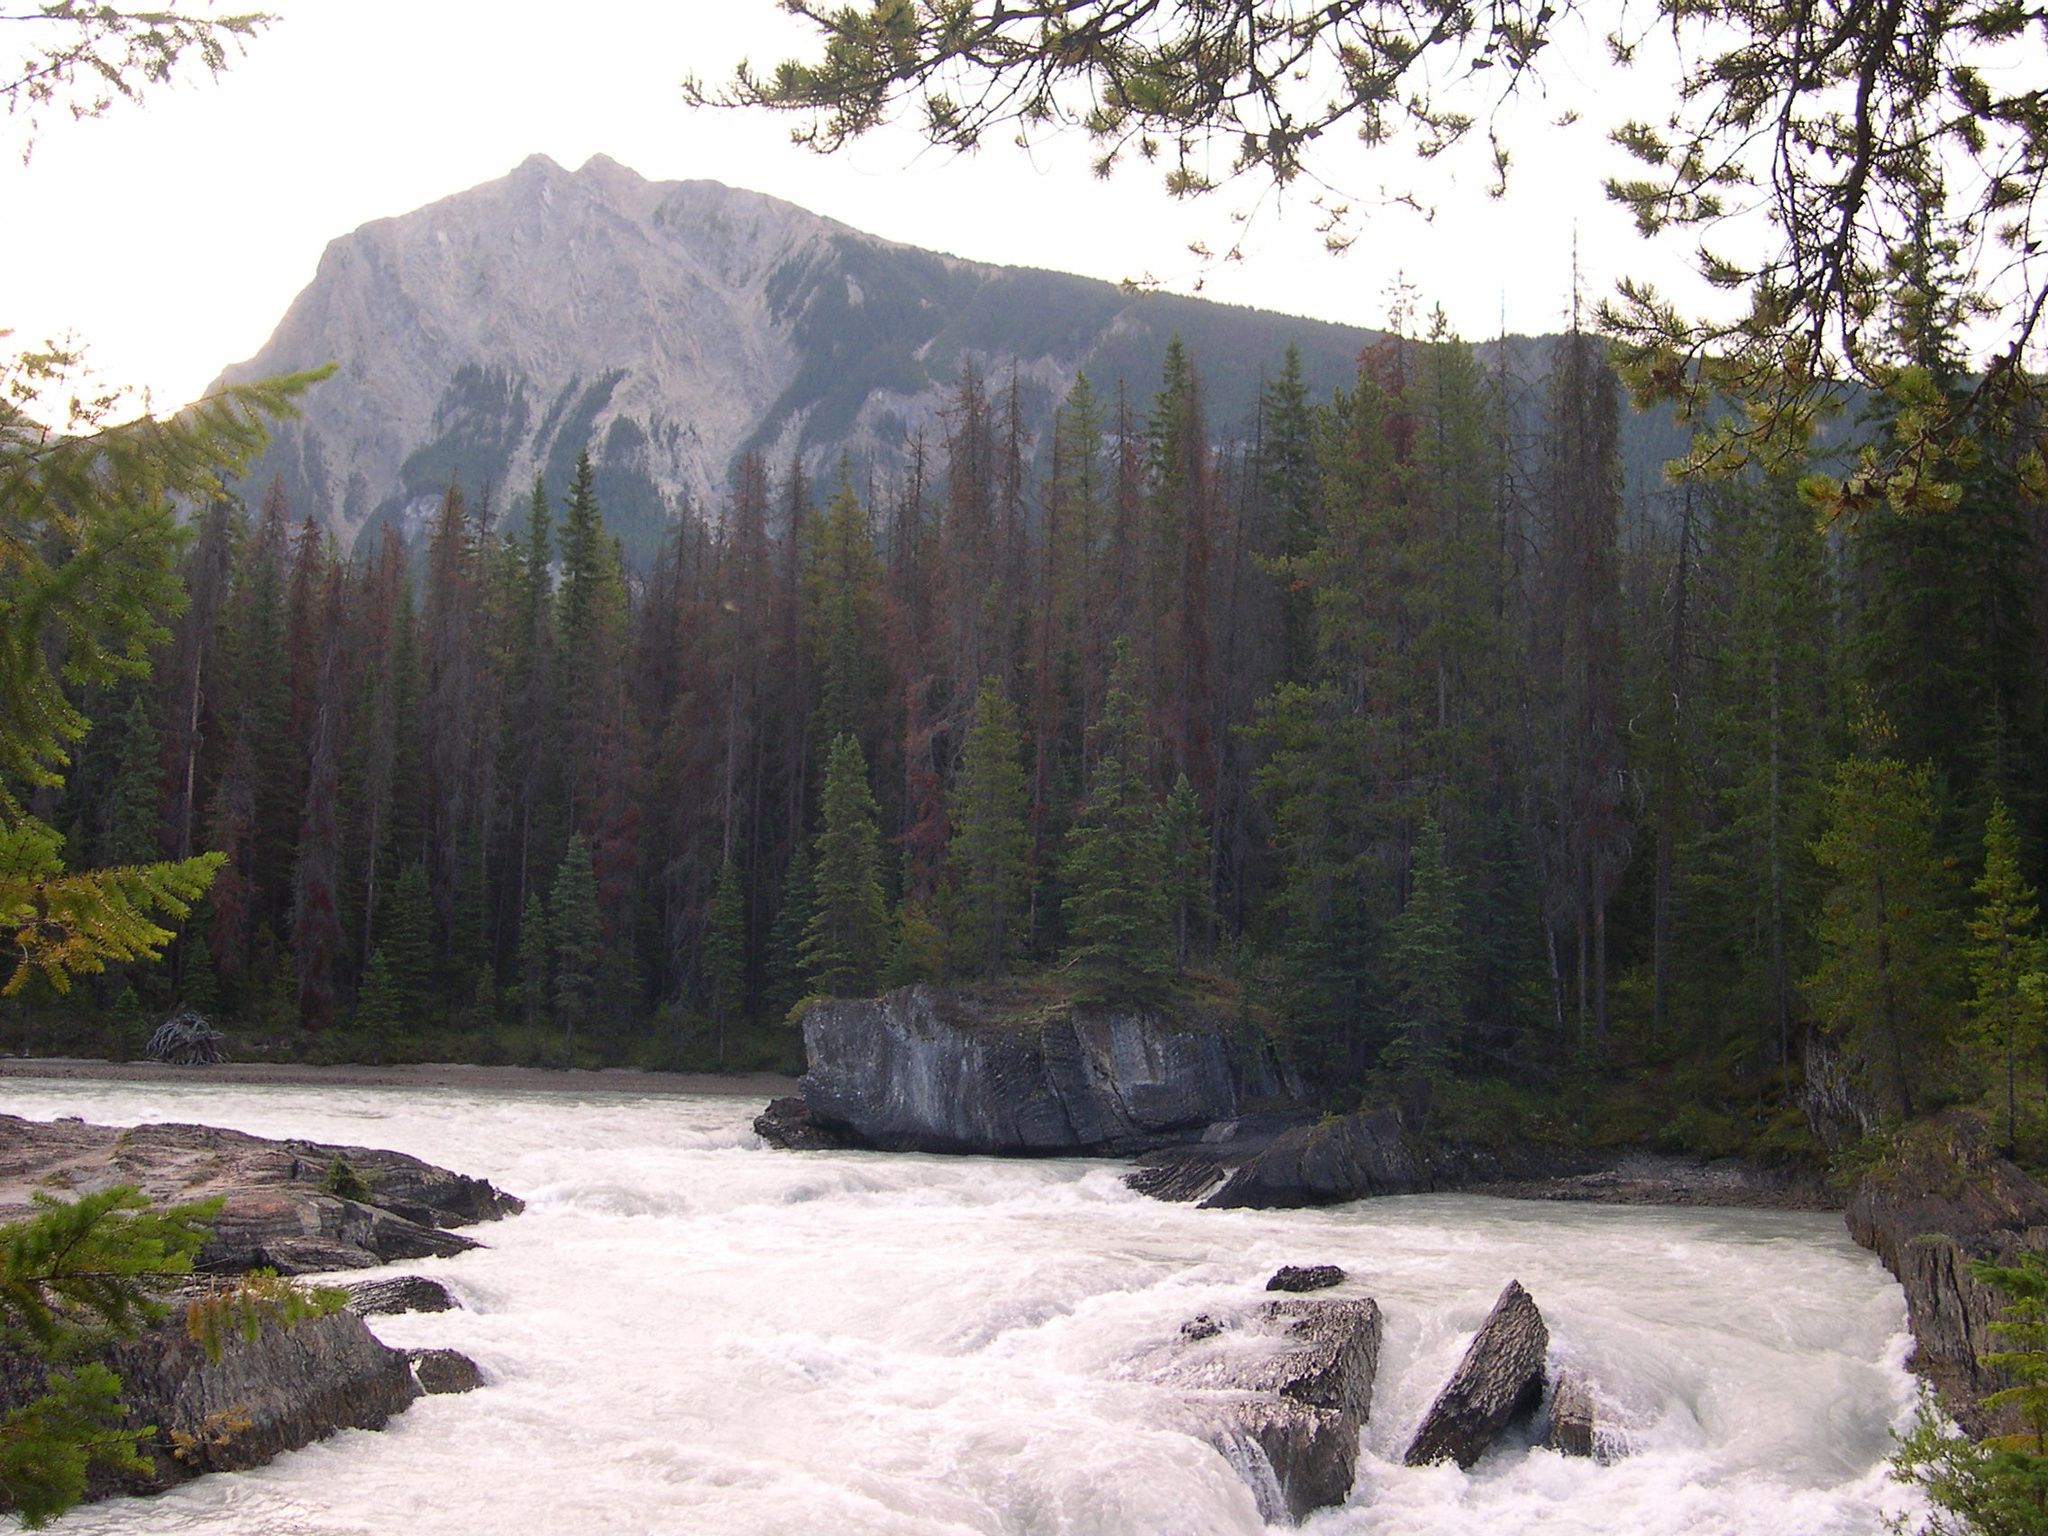 Kicking Horse River with forest and mountains in background - Canada